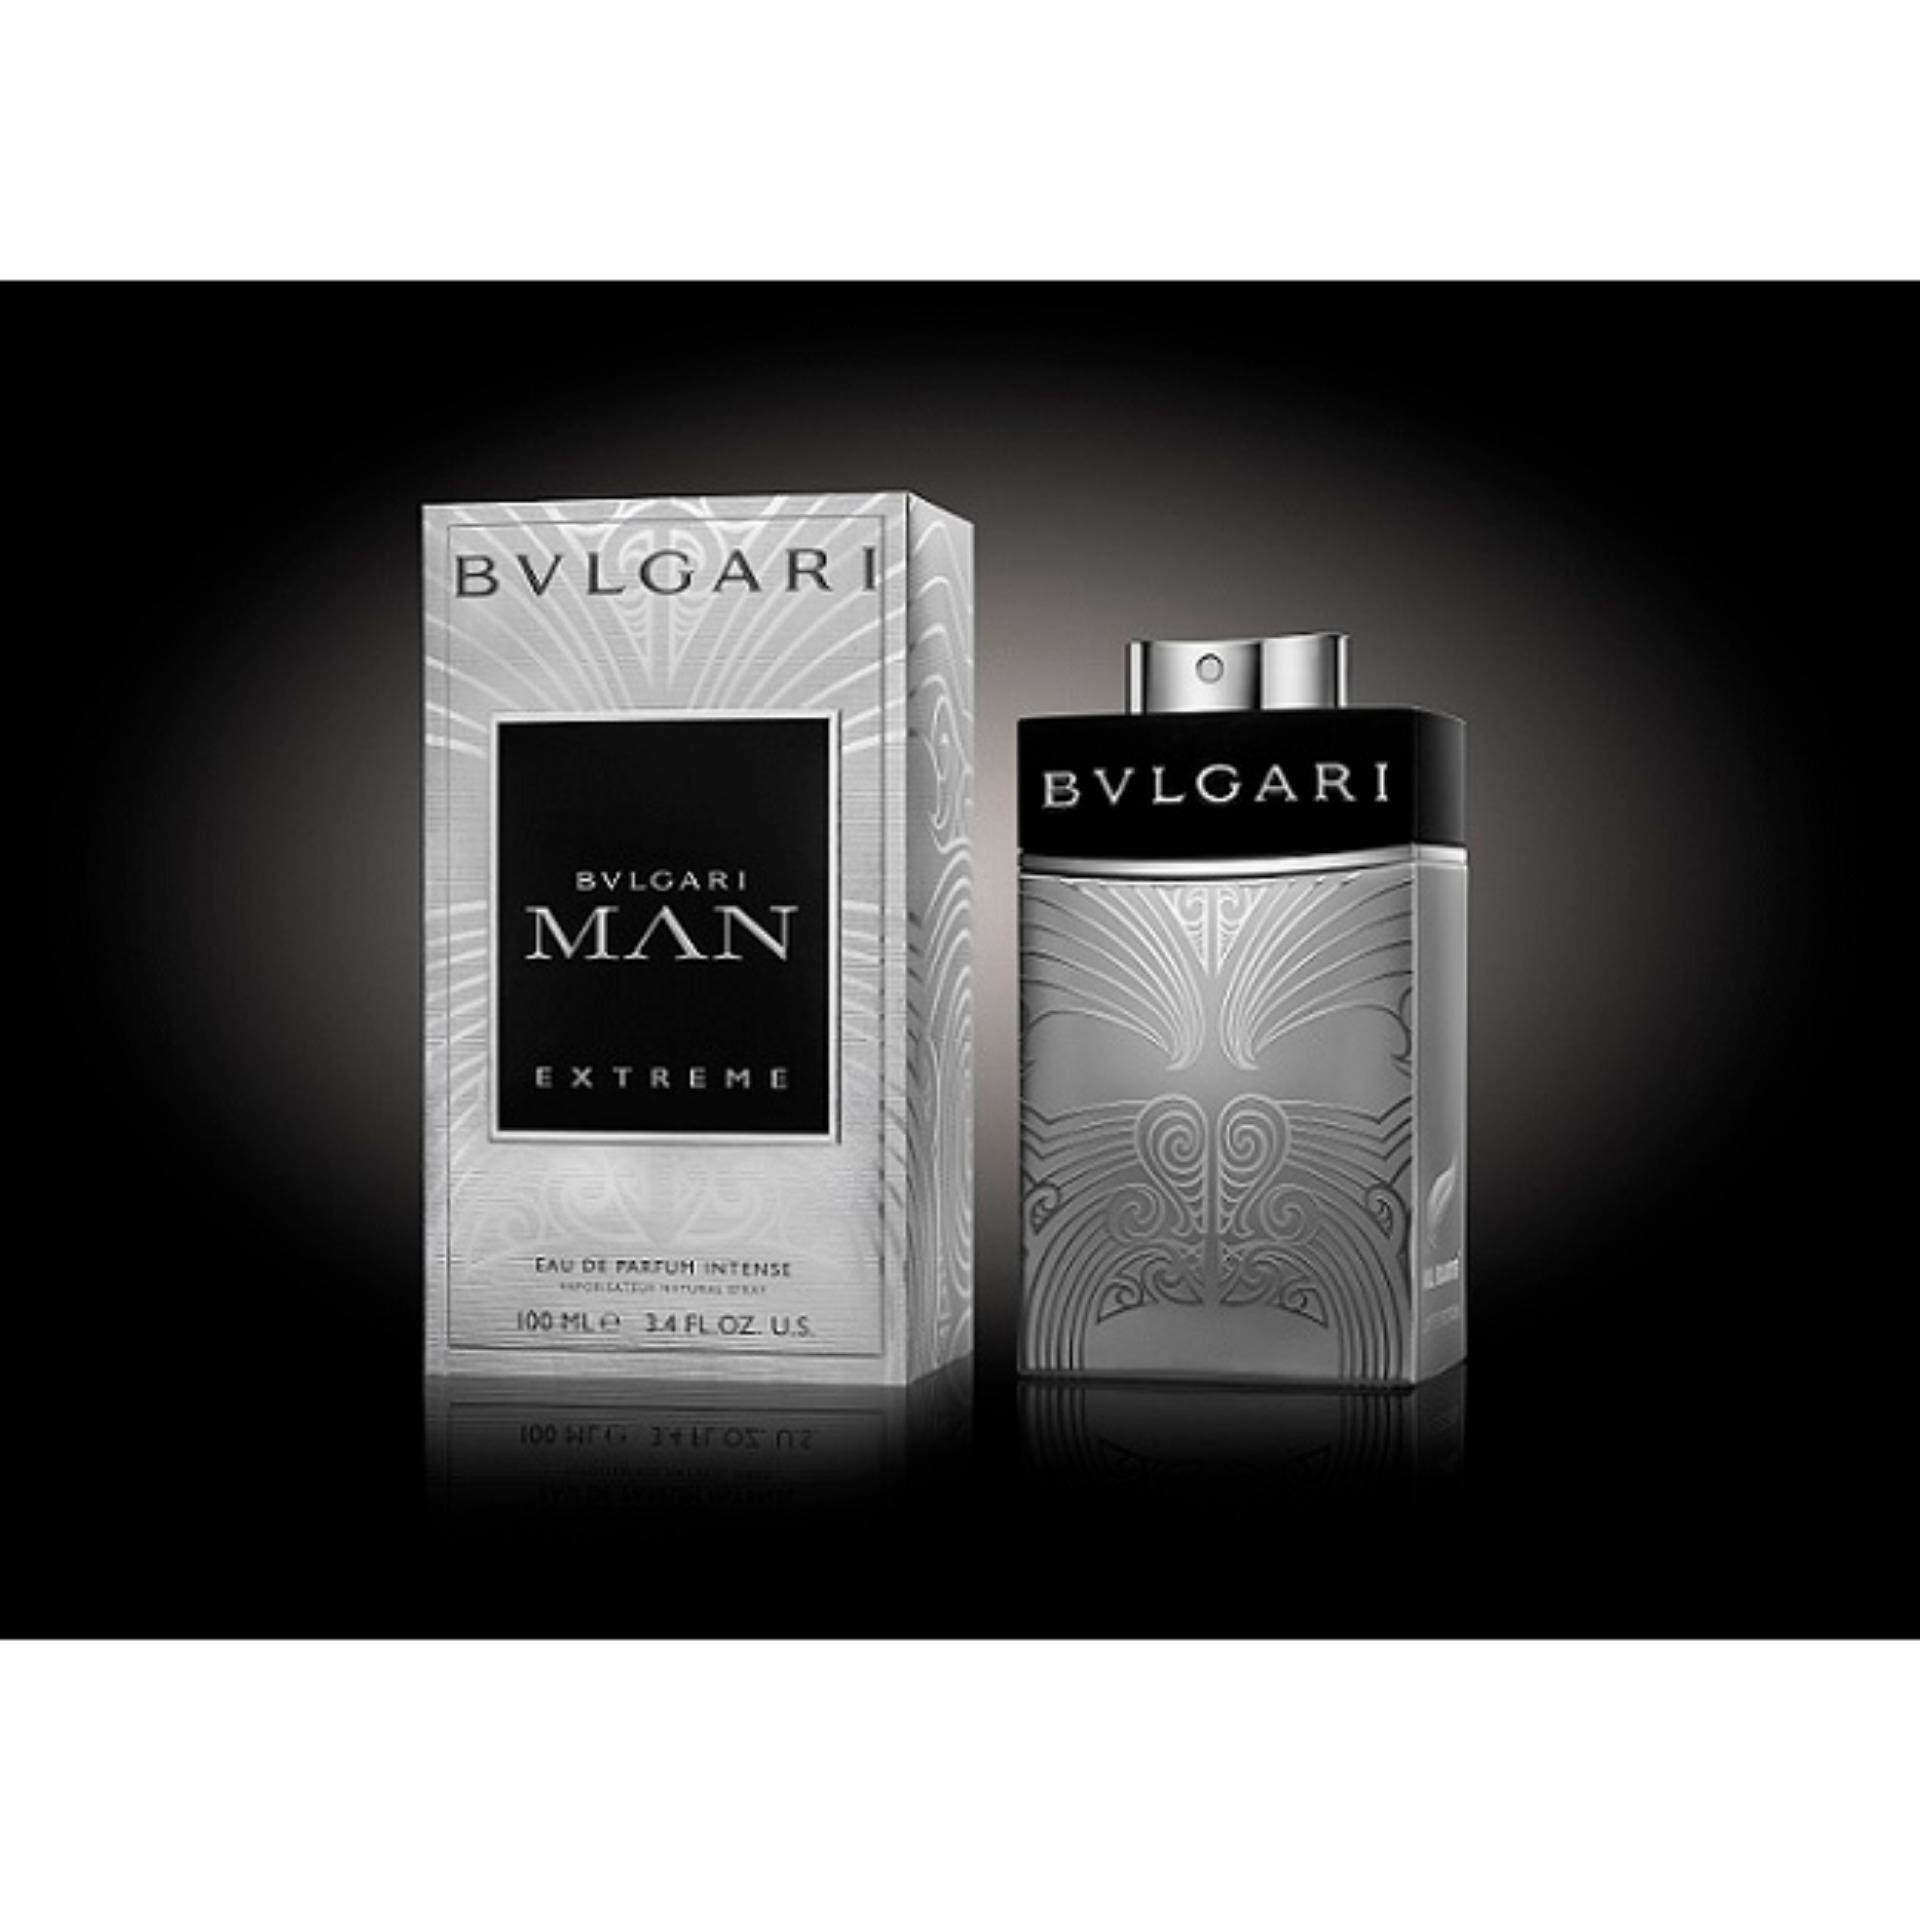 Buying Jeanne Arthes Co2 Extreme Men Edp 100ml Recent Model Parfum Original Man Bulgari For Spray Perfume Excellend Quality Assured